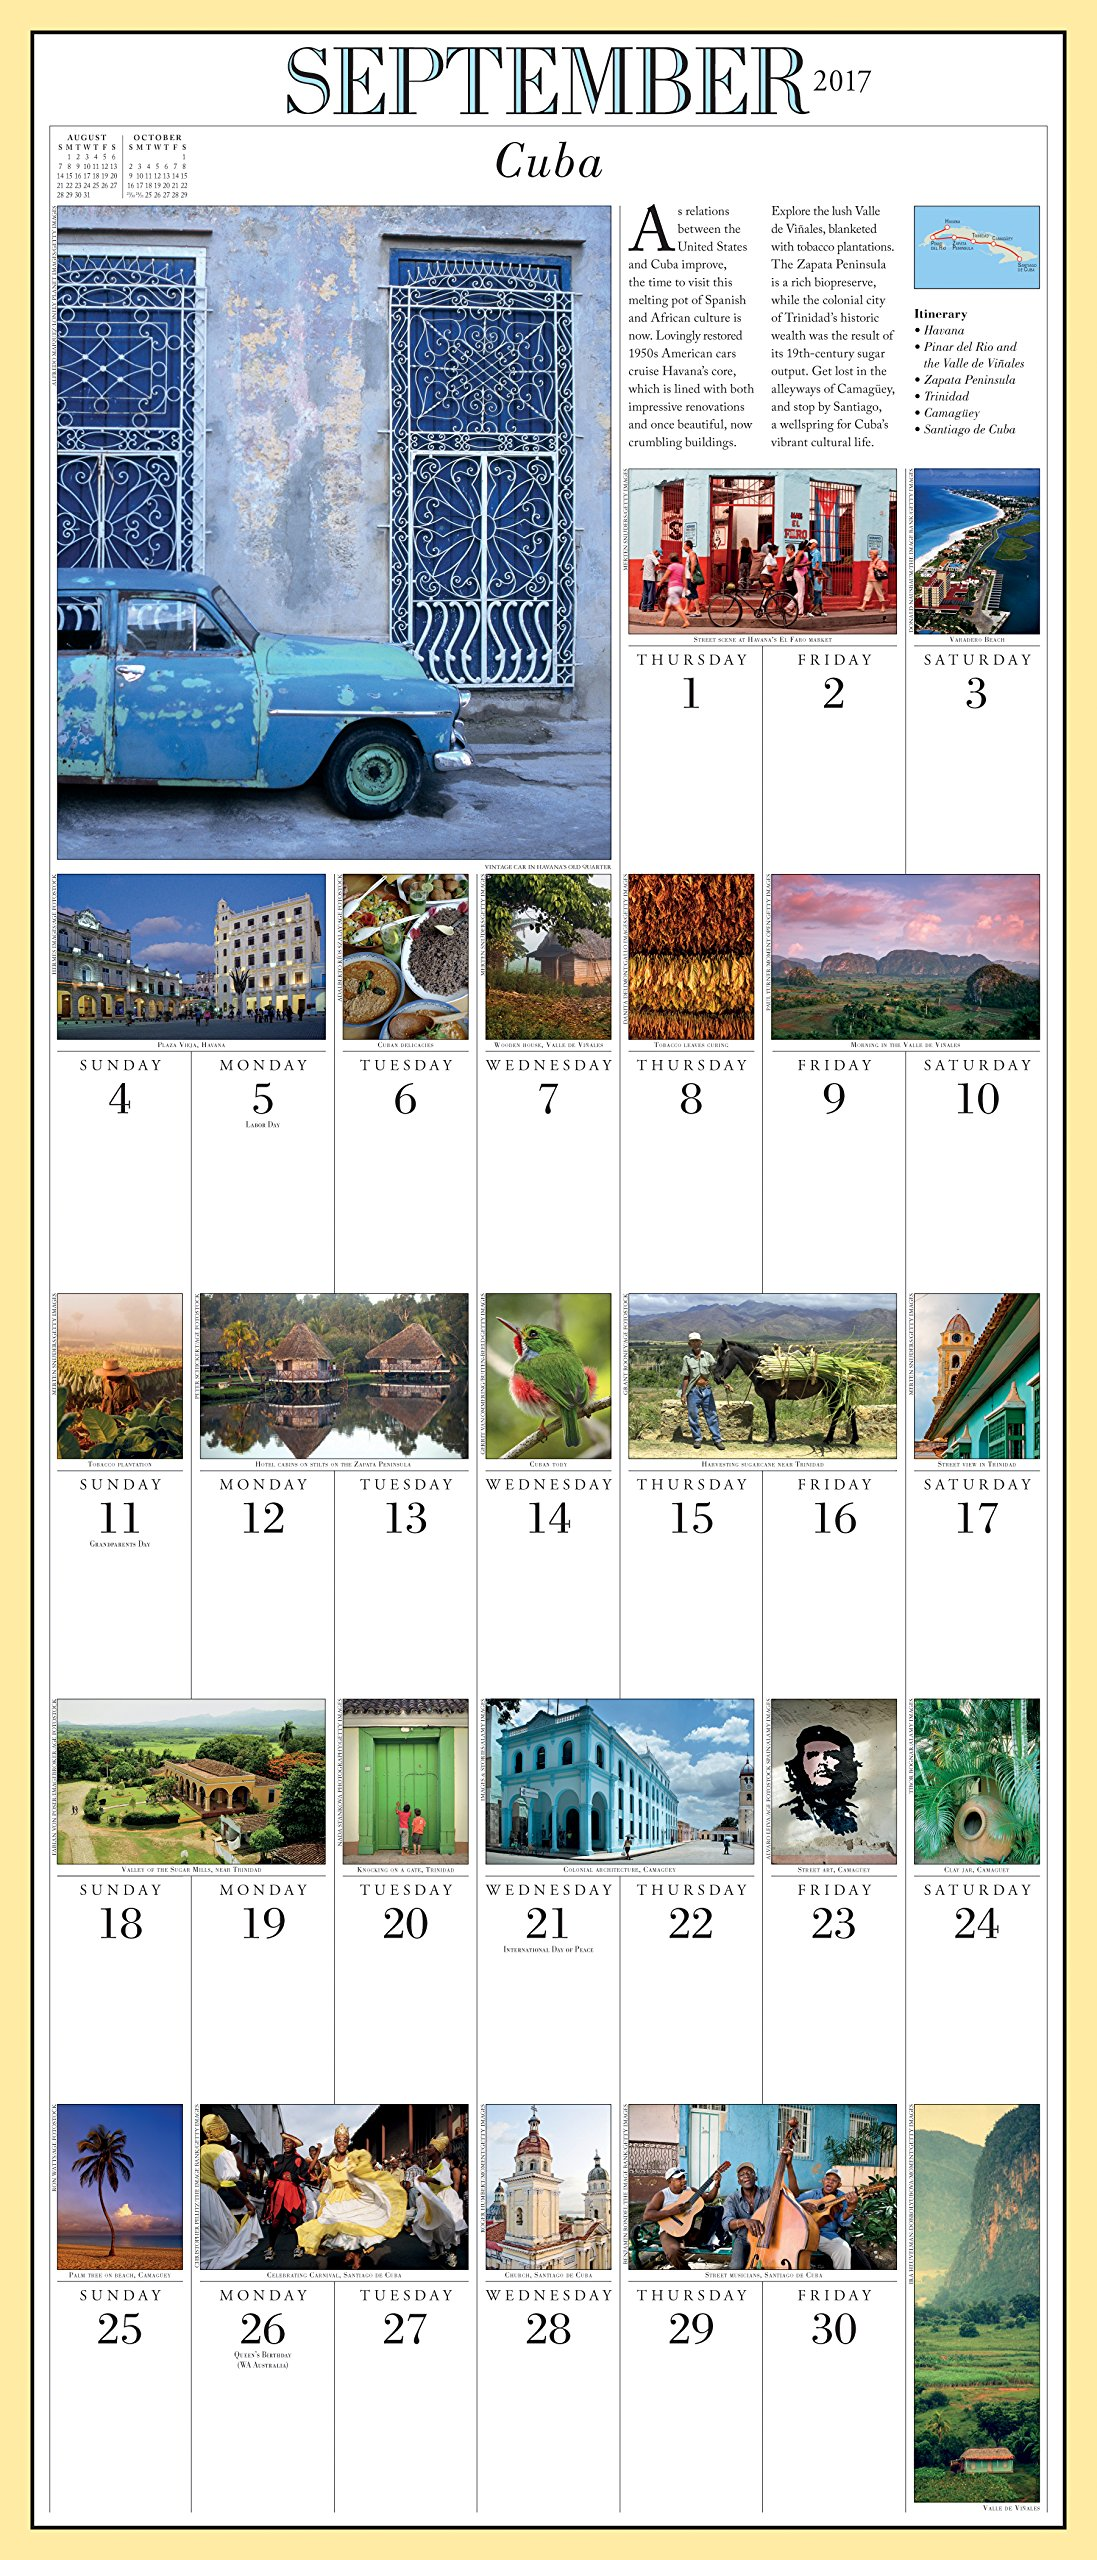 1, 000 Places to See Before You Die Picture-A-Day Wall Calendar 2017:  Patricia Schultz: 9780761188520: Amazon.com: Books